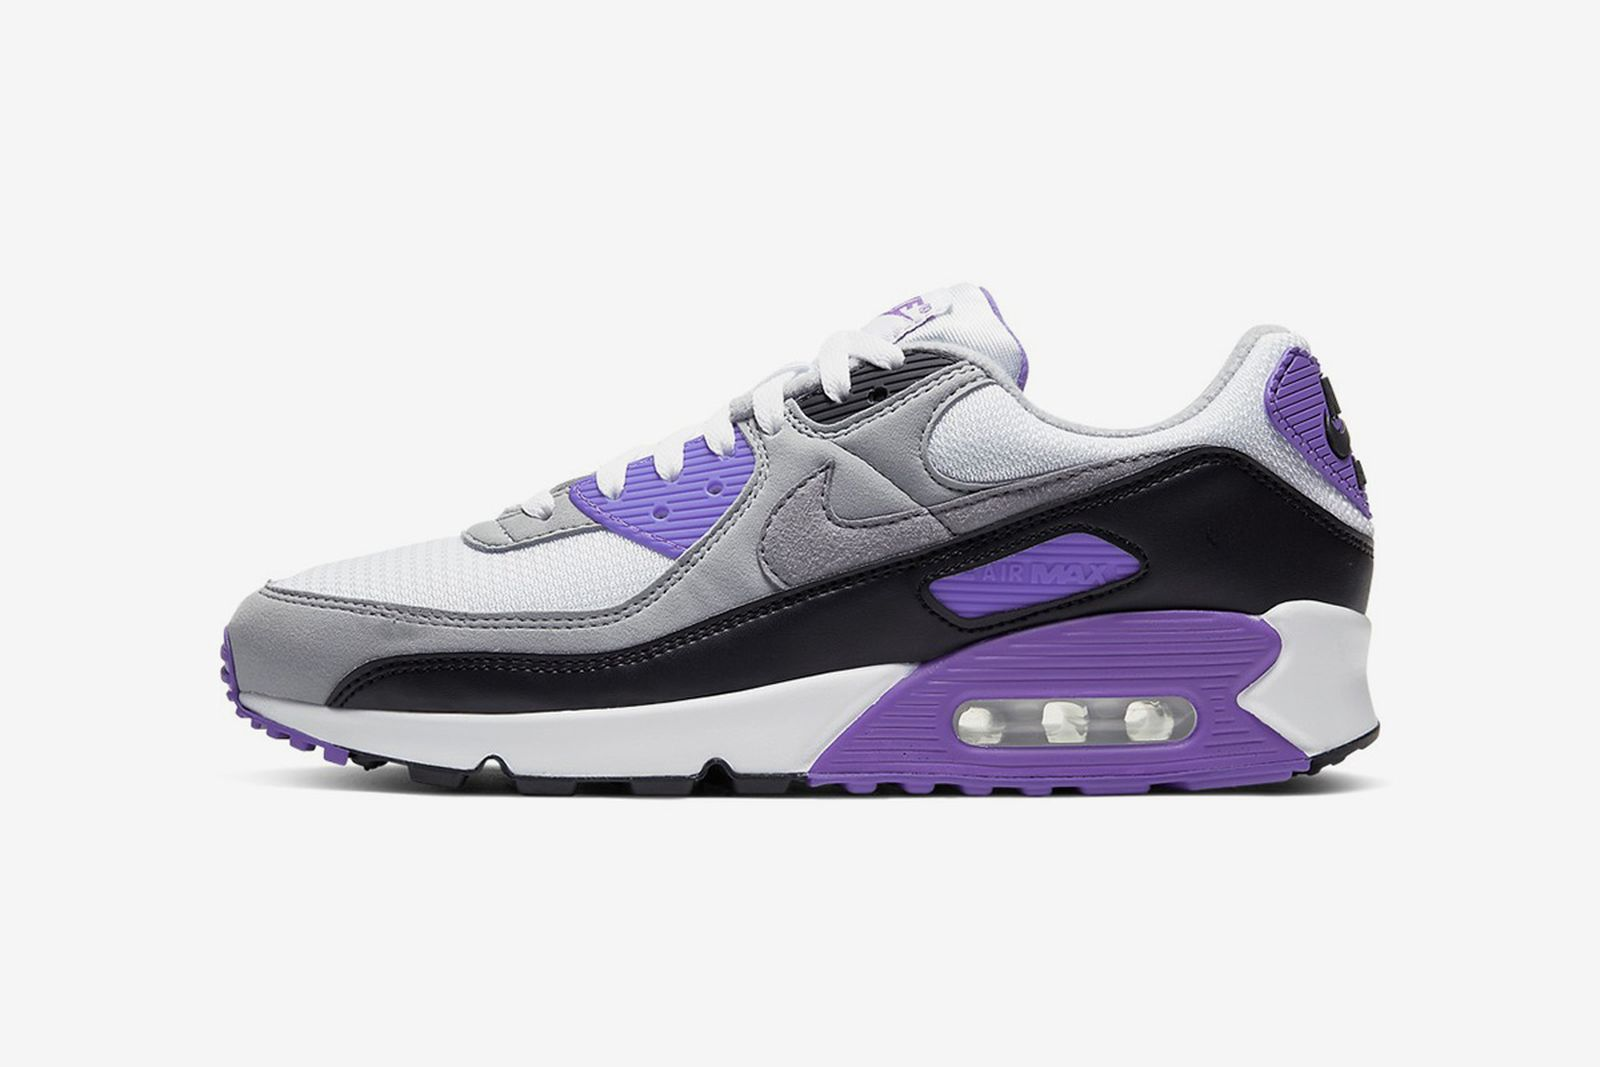 nike-air-max-90-30th-anniversary-colorways-release-date-price-1-06